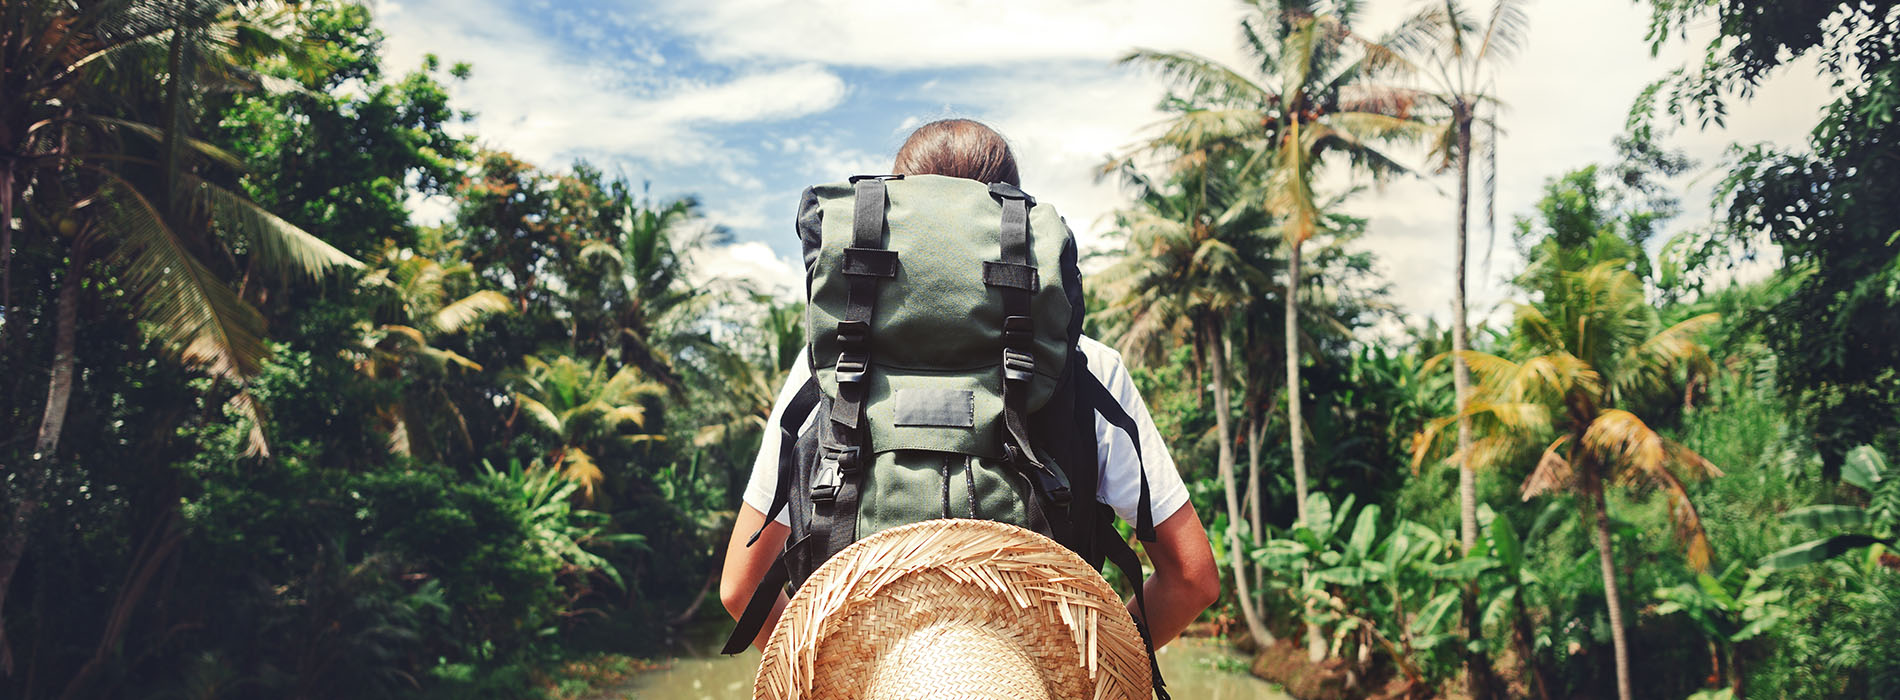 Back of a backpacker in front of a tropical paradise